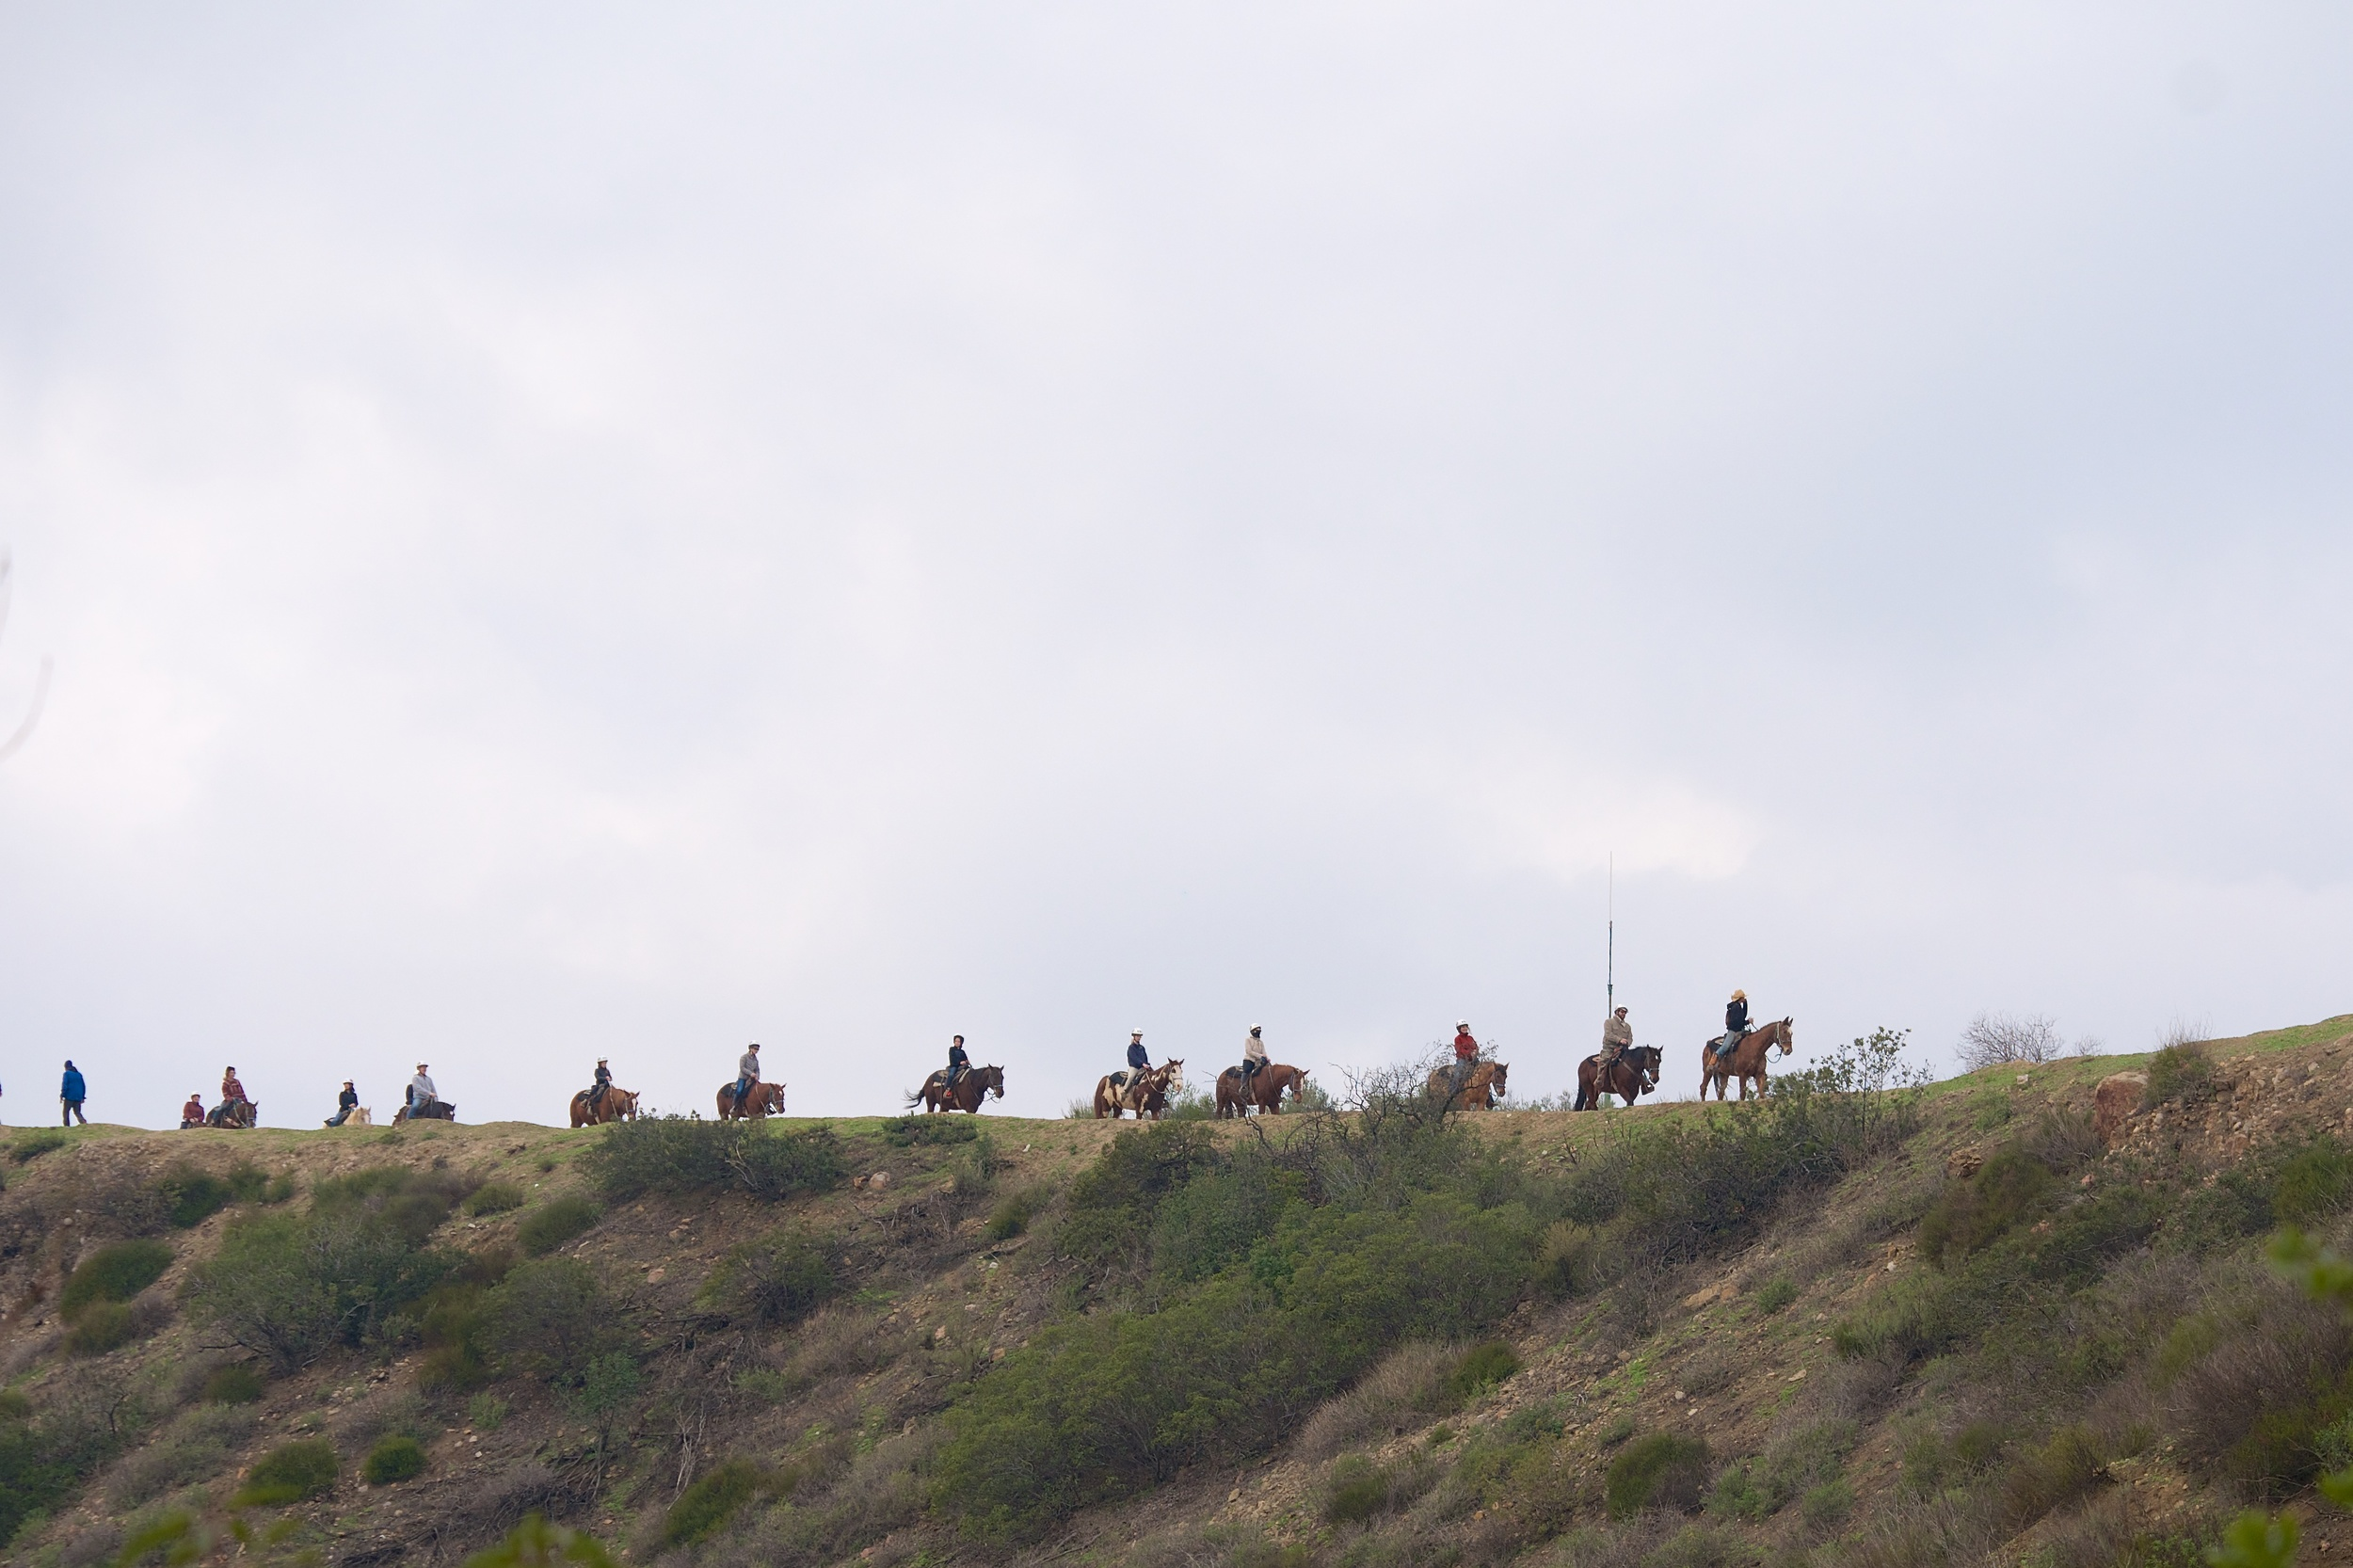 We saw a group of riders as we were going up the hill, and saw them going down as we got to the top